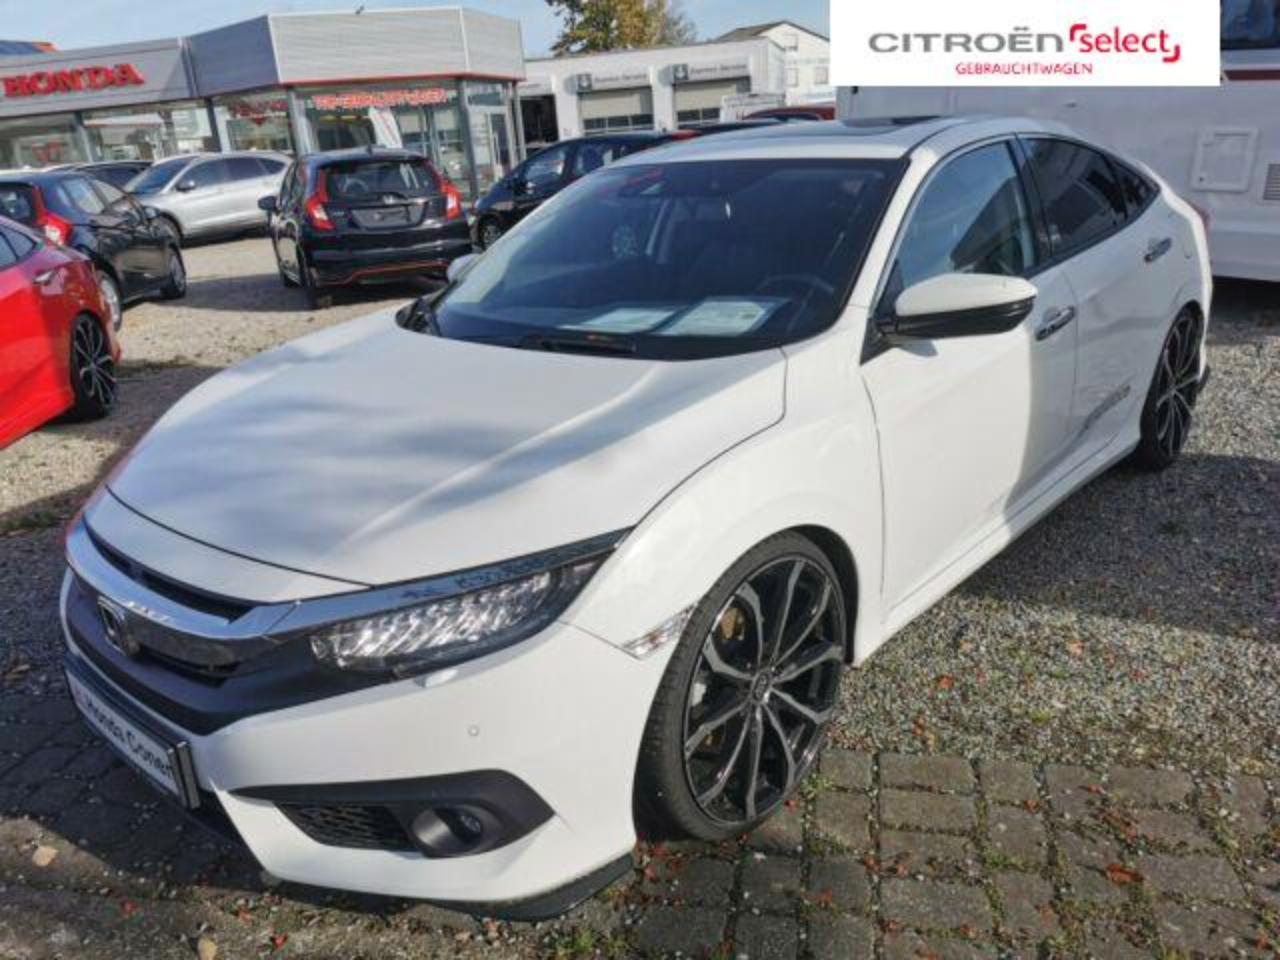 Honda Civic Limousine 1.6 i-DTEC Executive  HC Edition